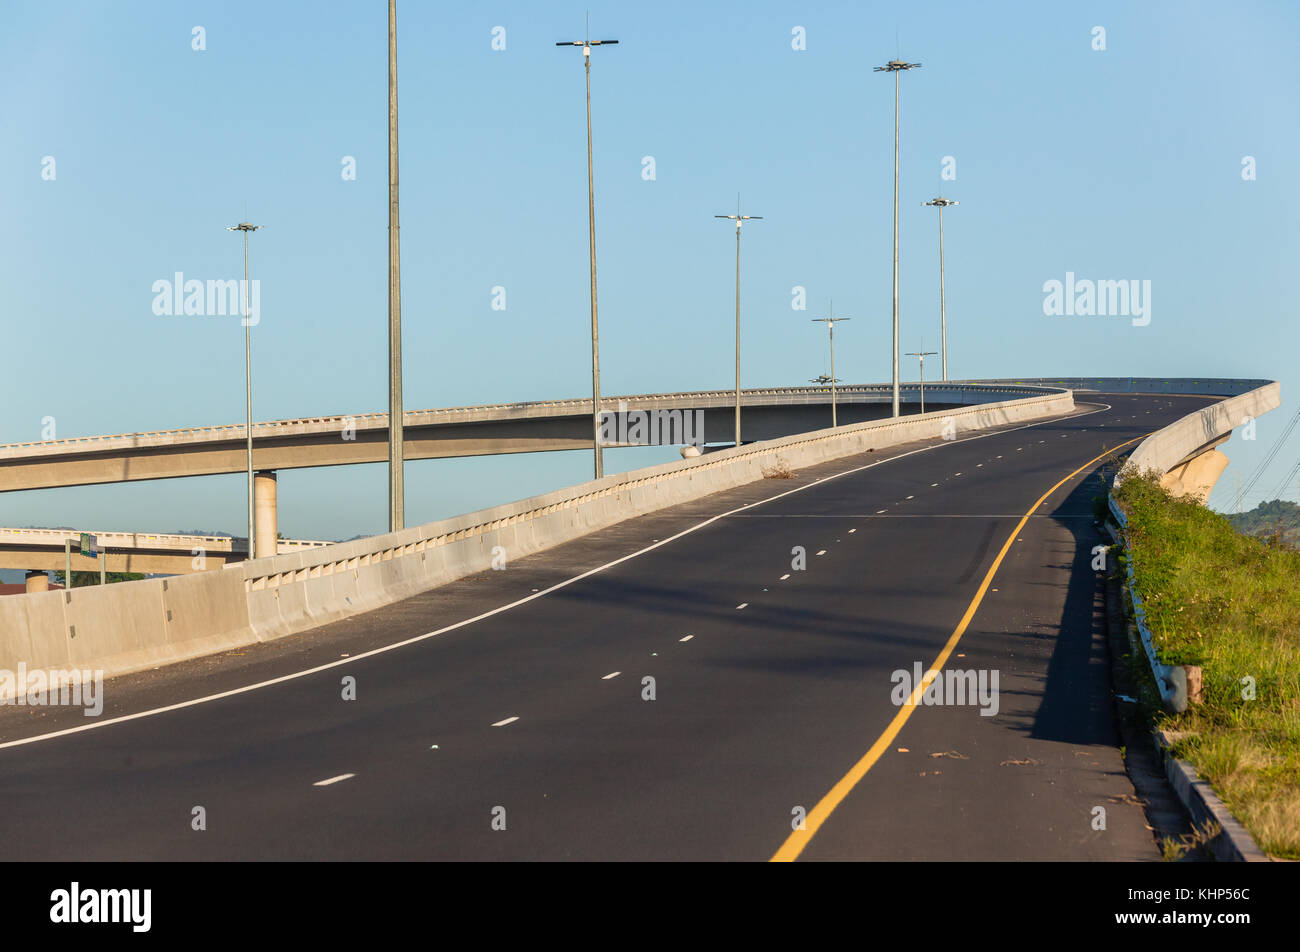 Road highway overhead flyover ramp entry exit structures - Stock Image